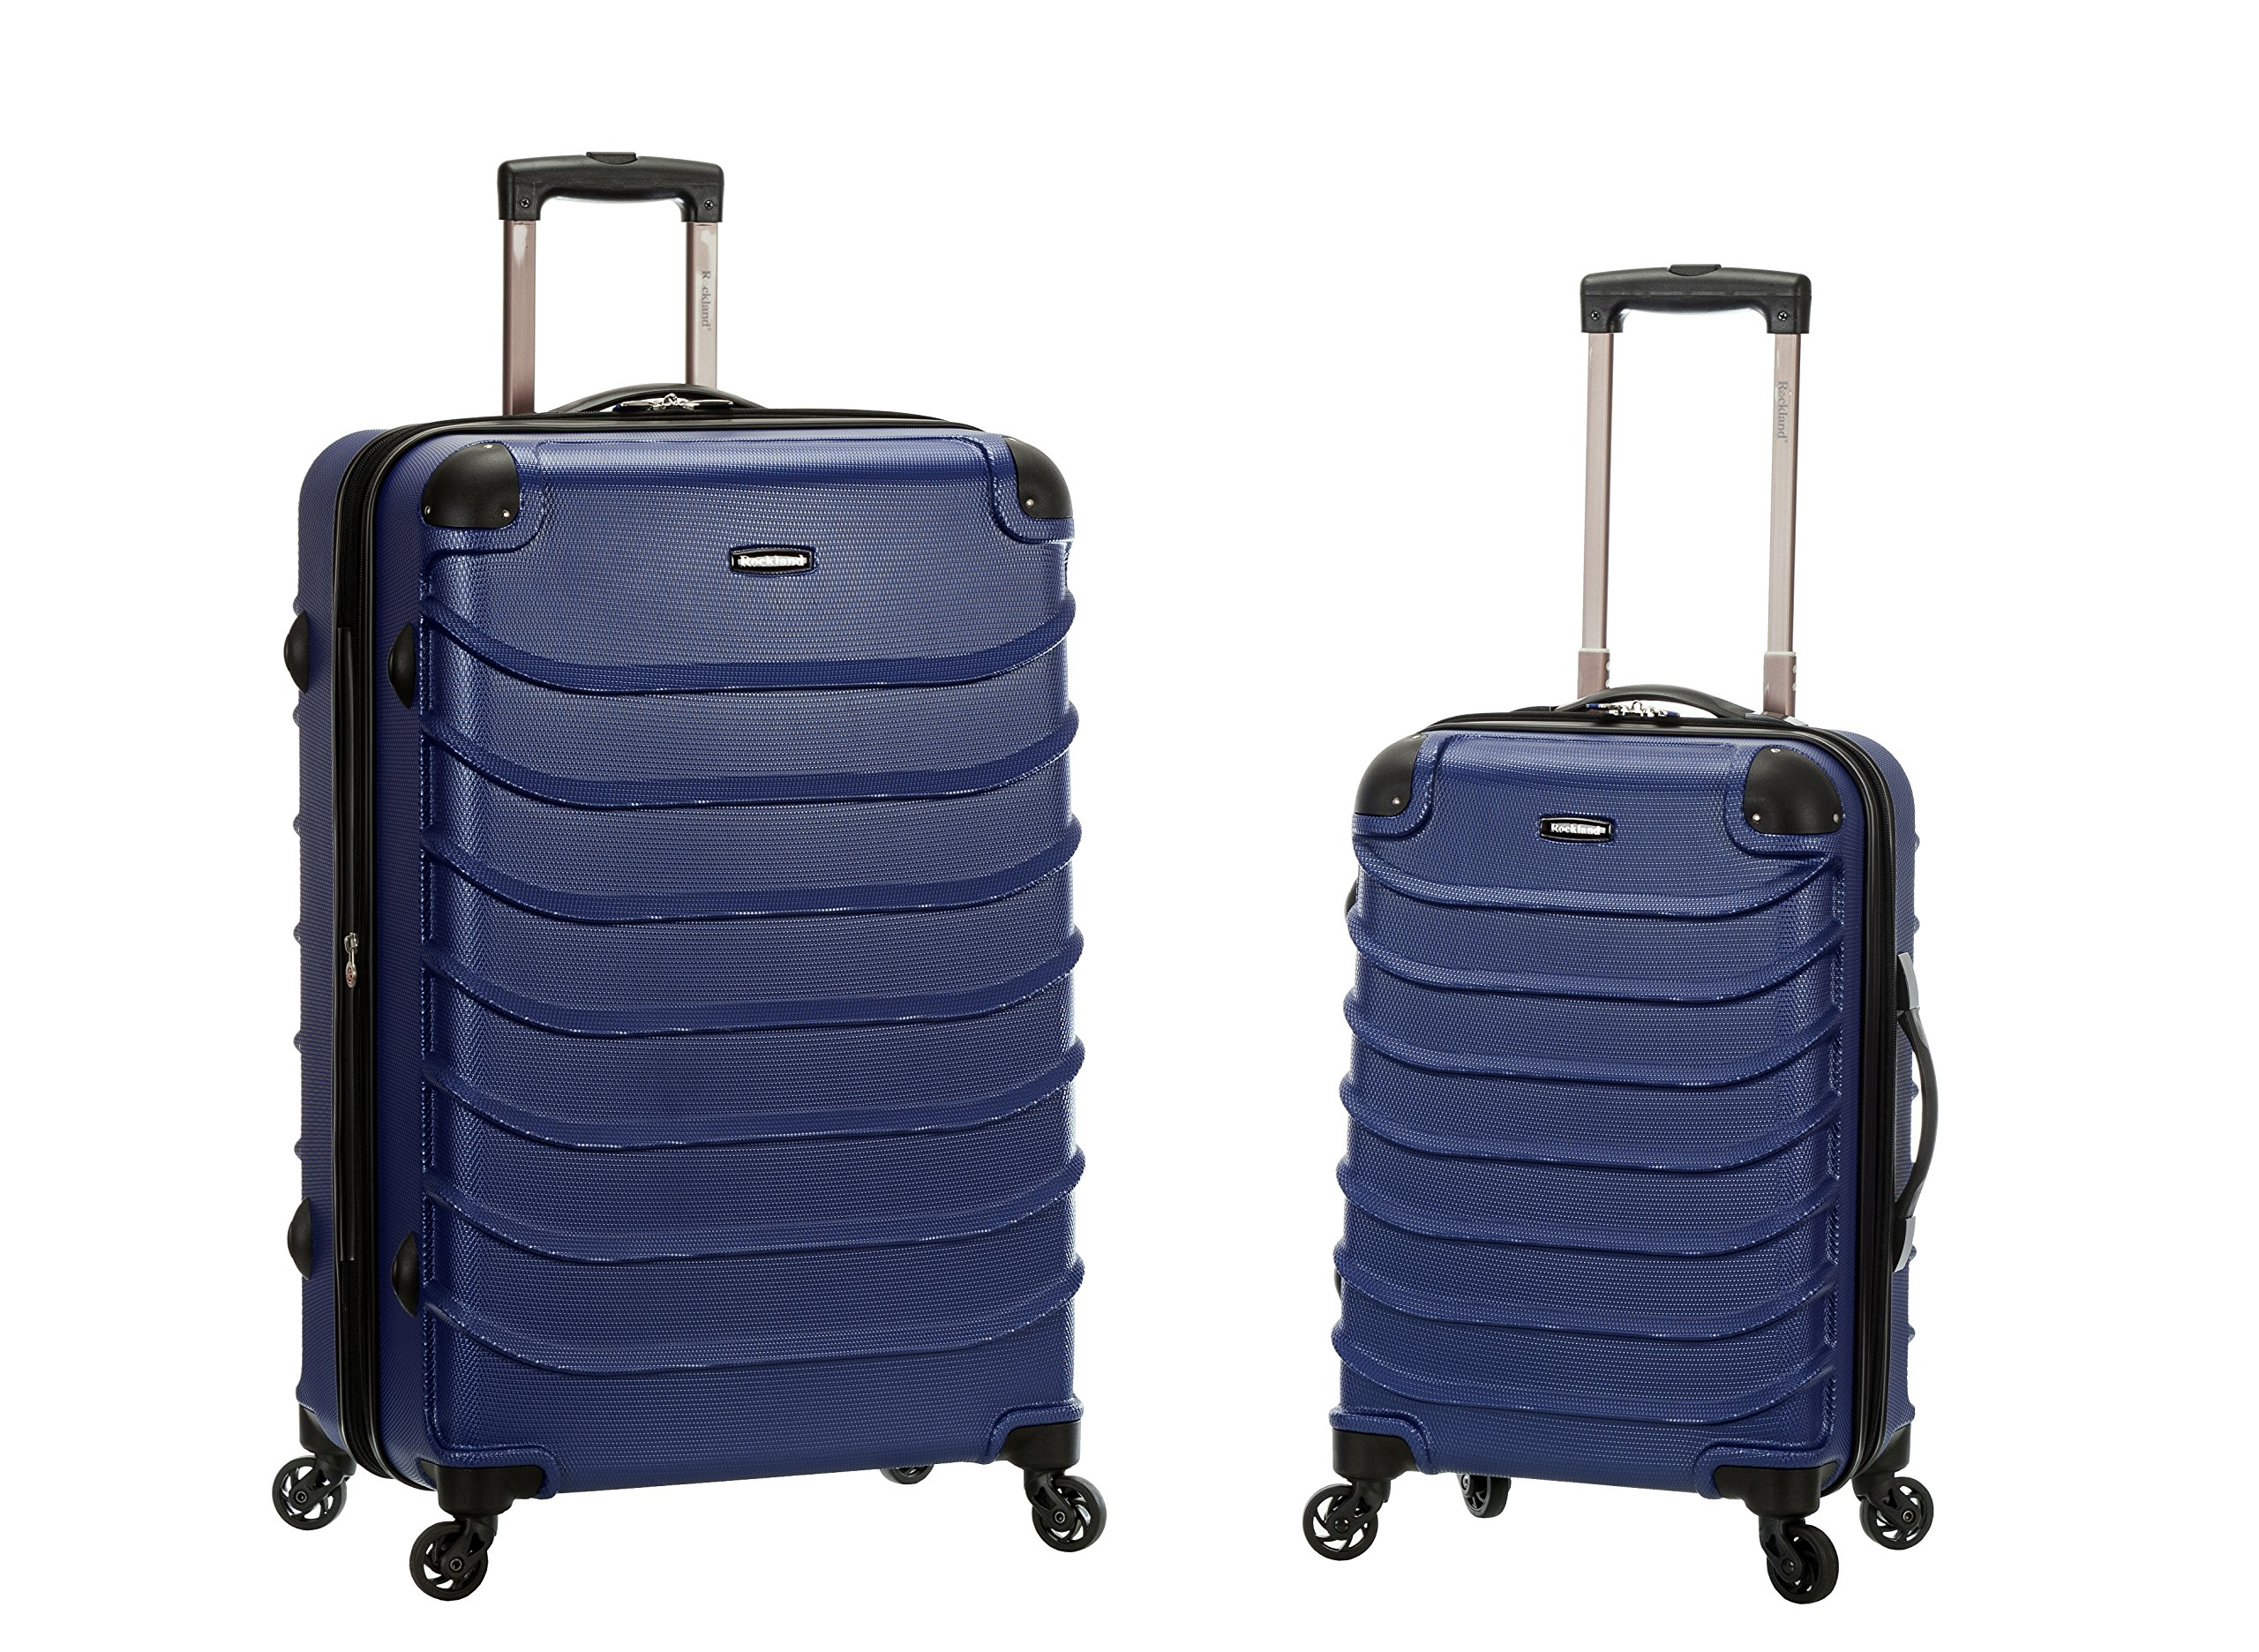 Rockland Speciale 20 Inch 28 Inch 2 PC Expandable ABS Spinner Set, Blue, One Size